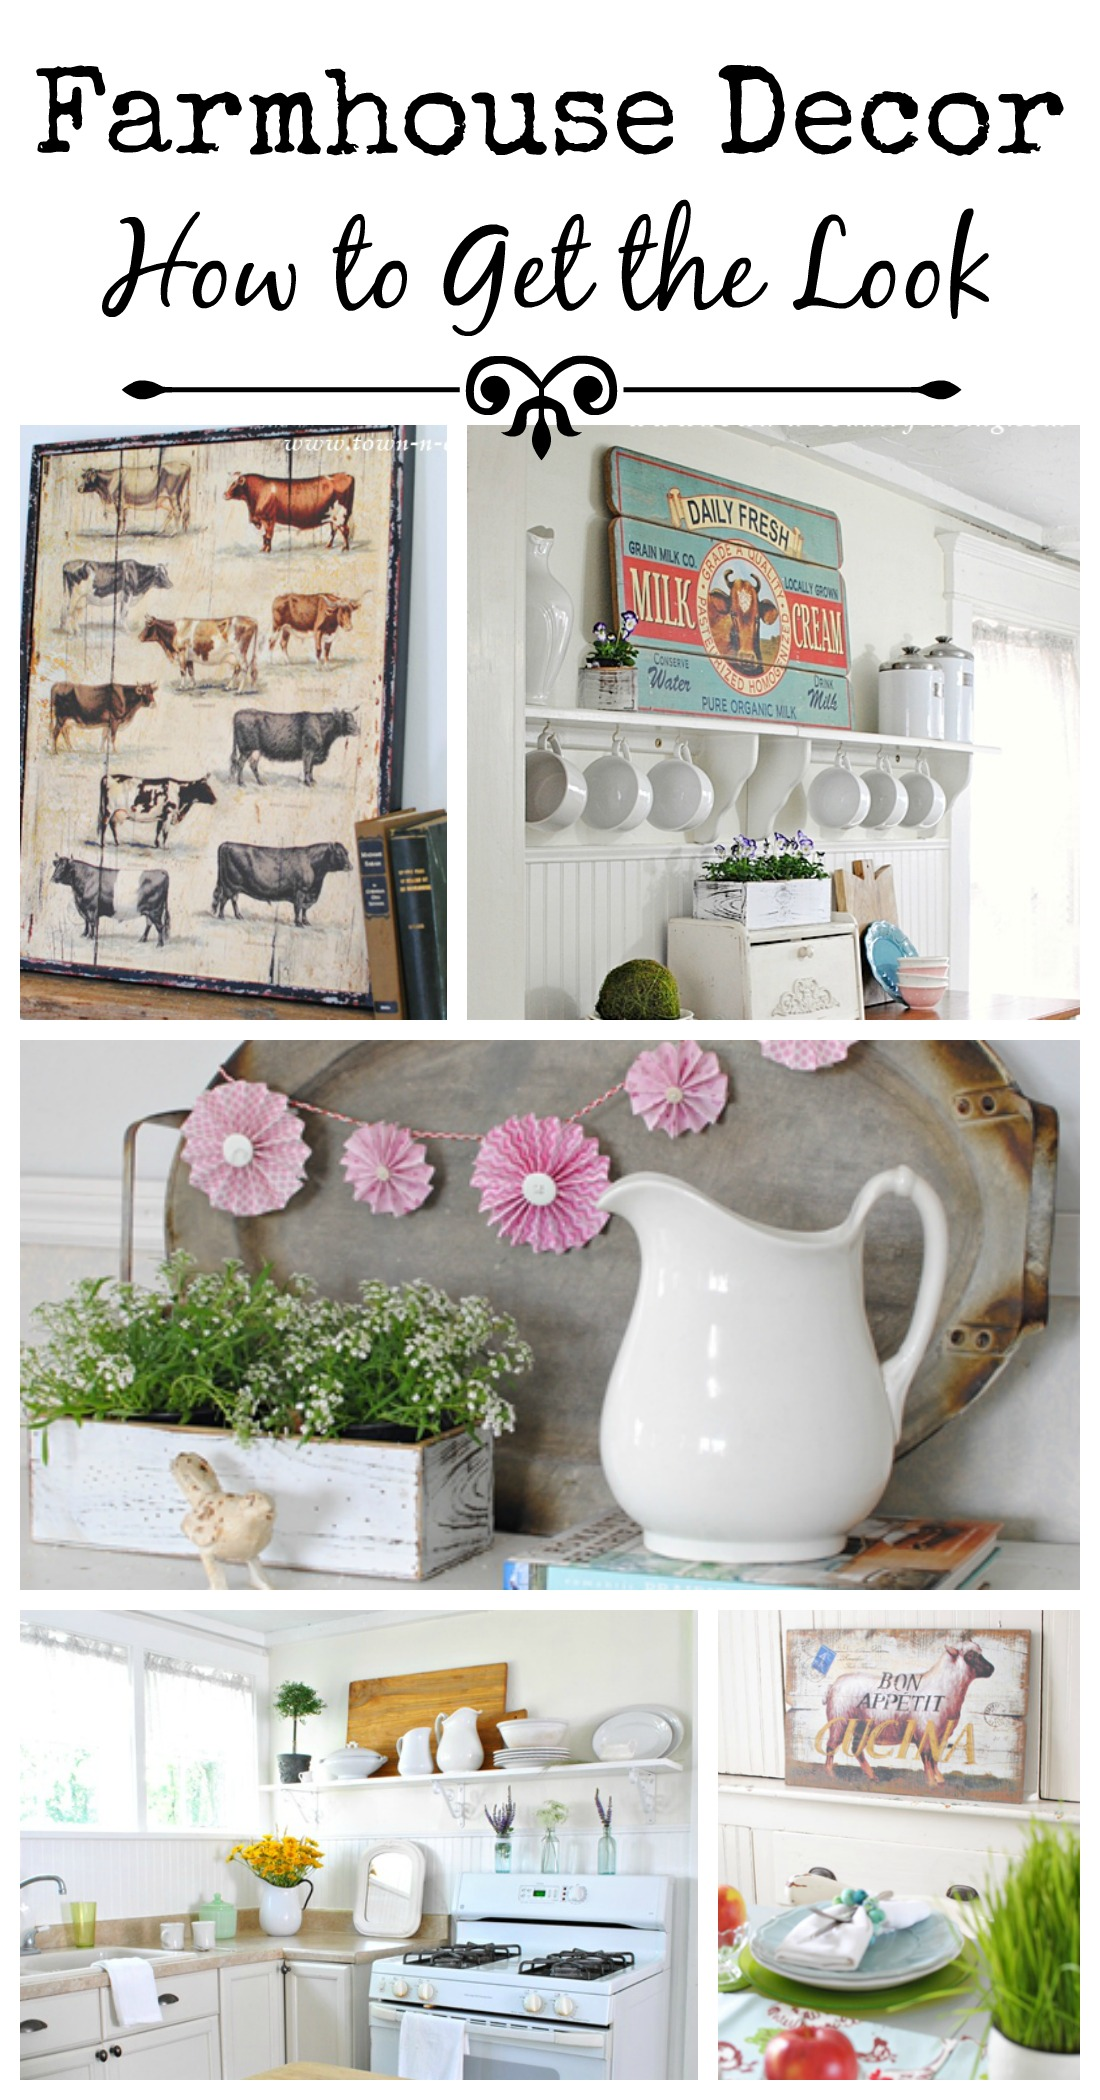 Farmhouse Decor With Antique Farm House